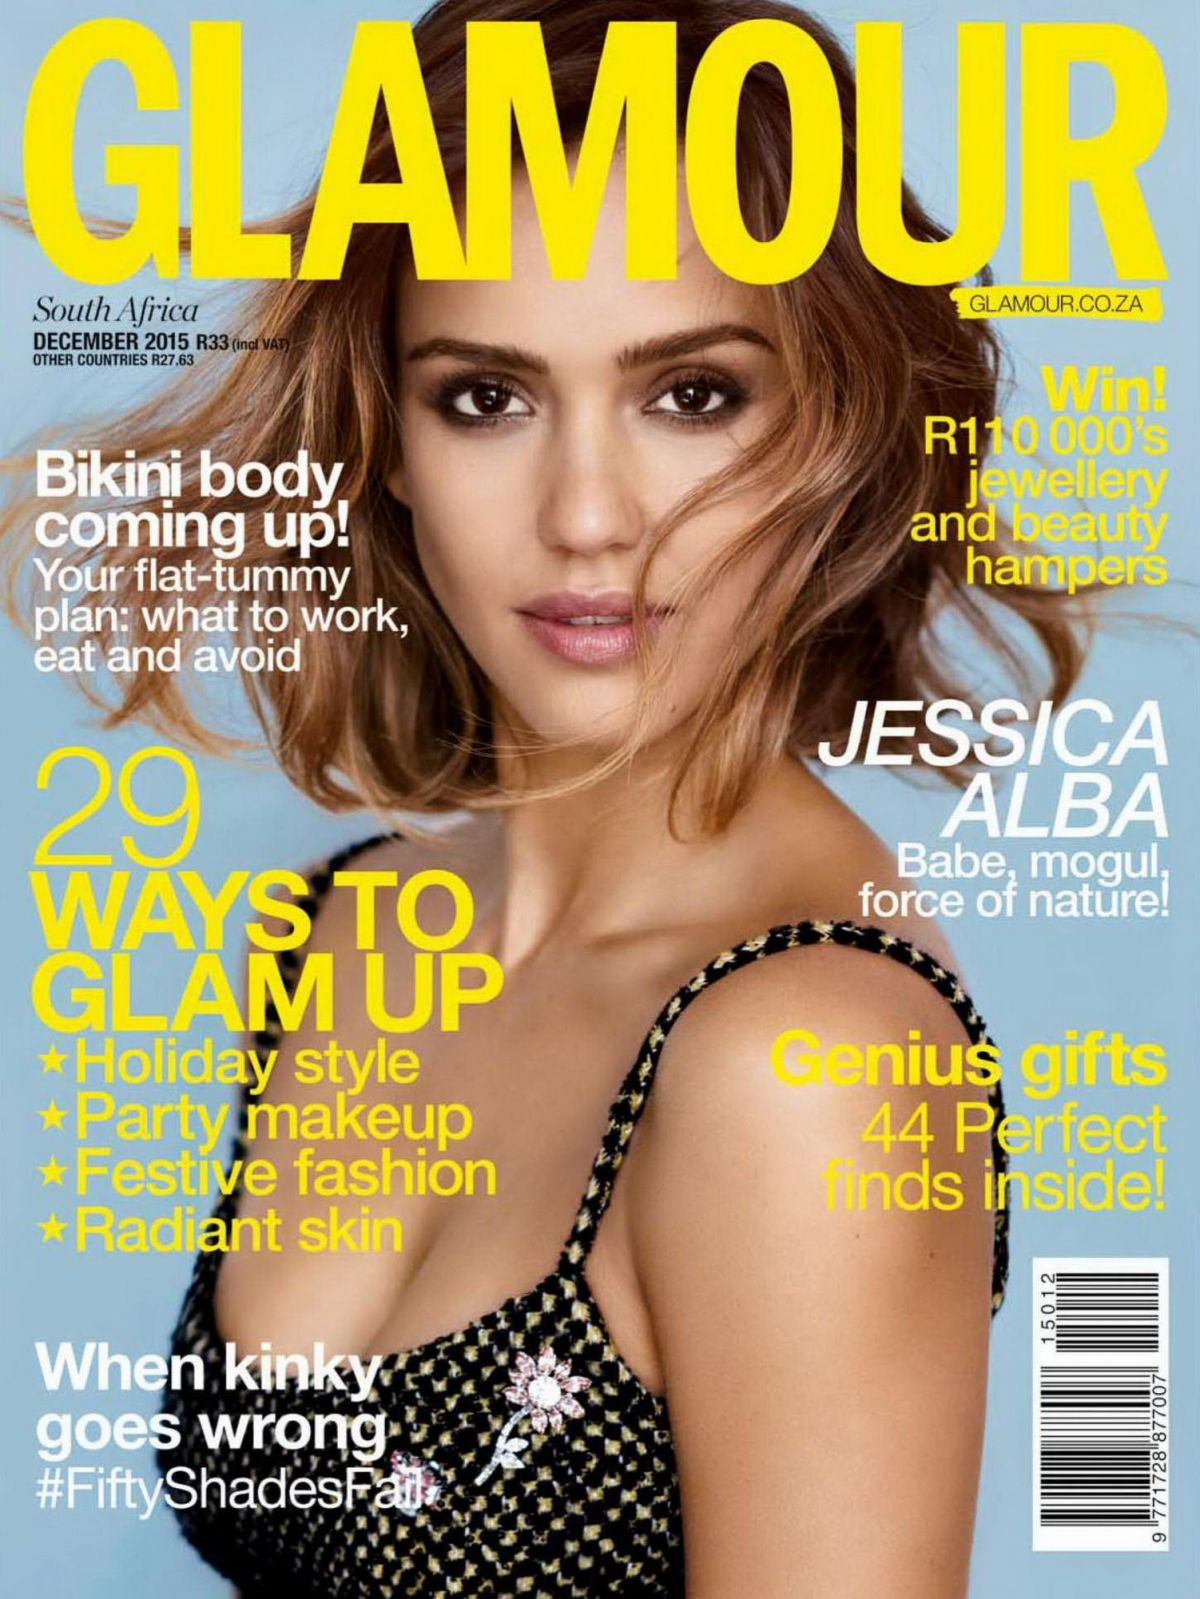 JESSICA ALBA In Glamour Magazine, South Africa December